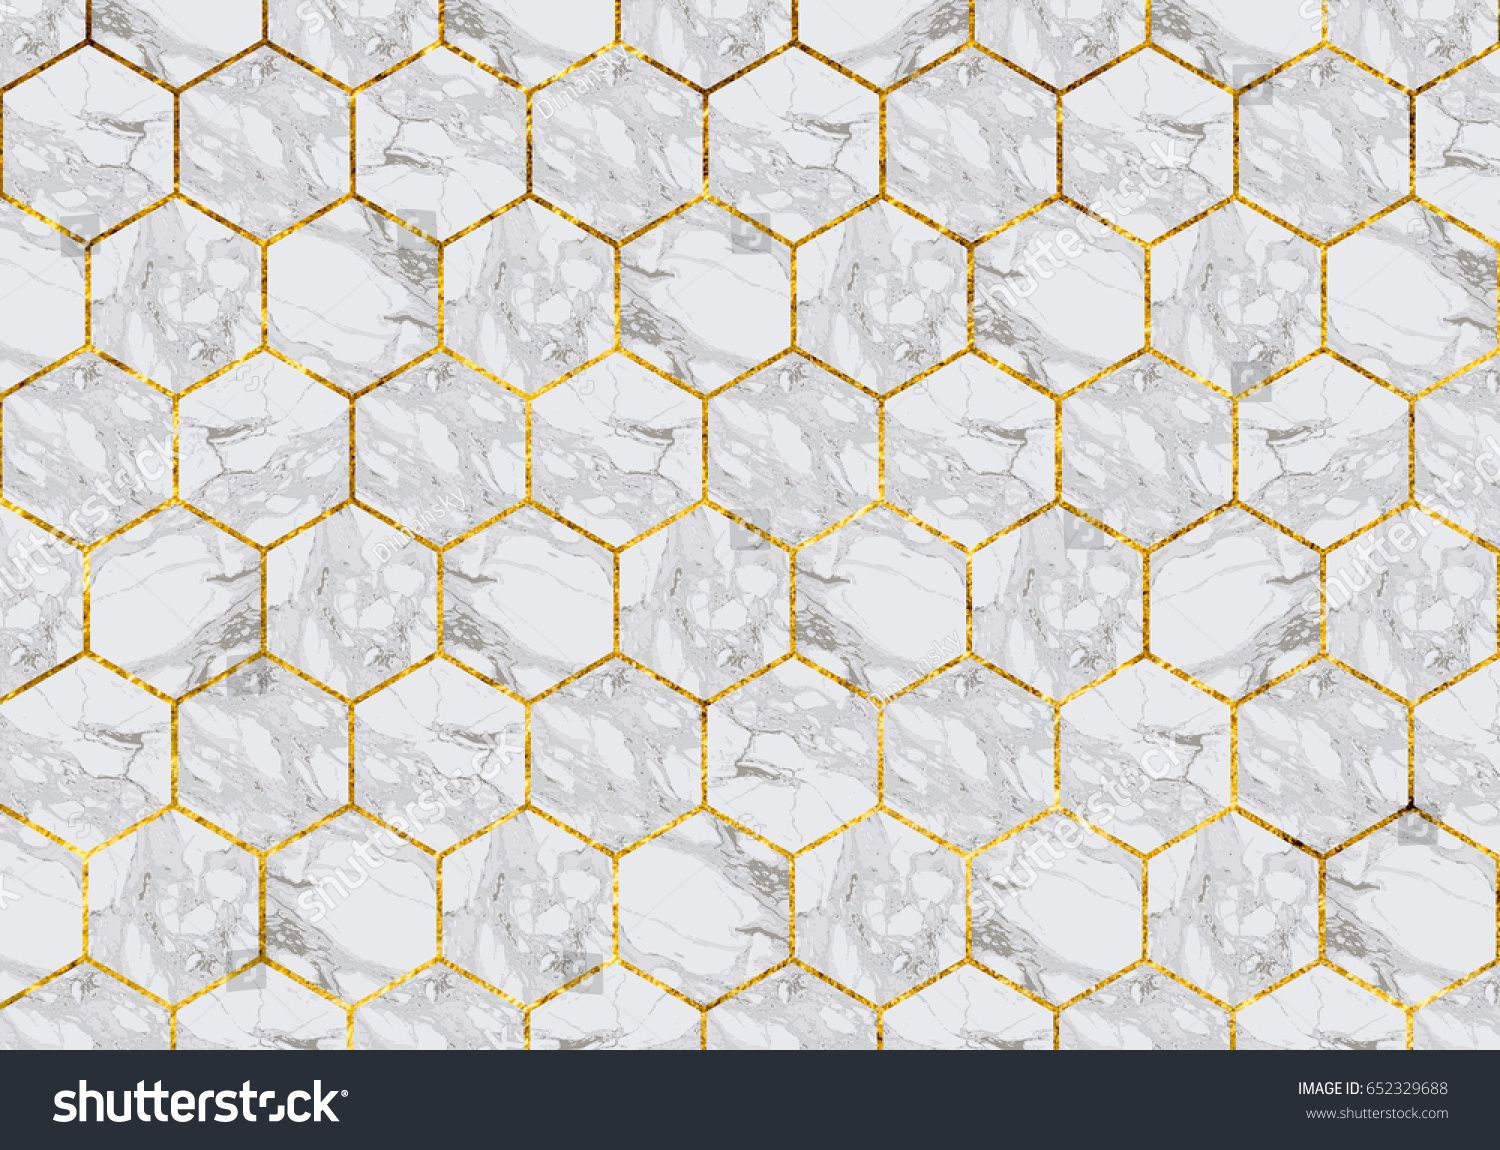 - Image Result For Gold Grout Marble Tiles, Tiles, Grout